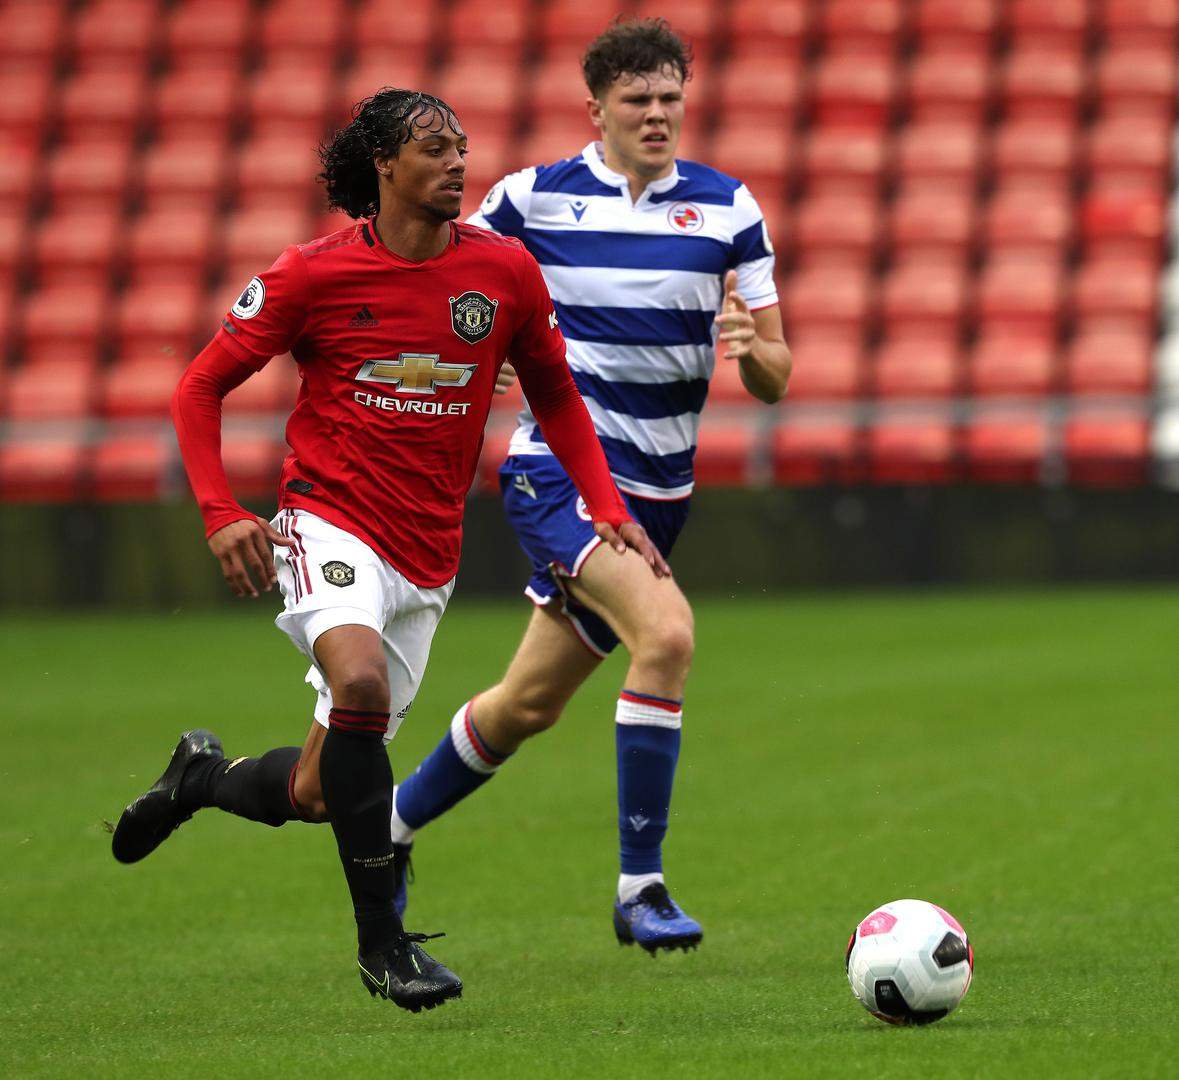 D'Mani Mellor on the ball against Reading Under-23s